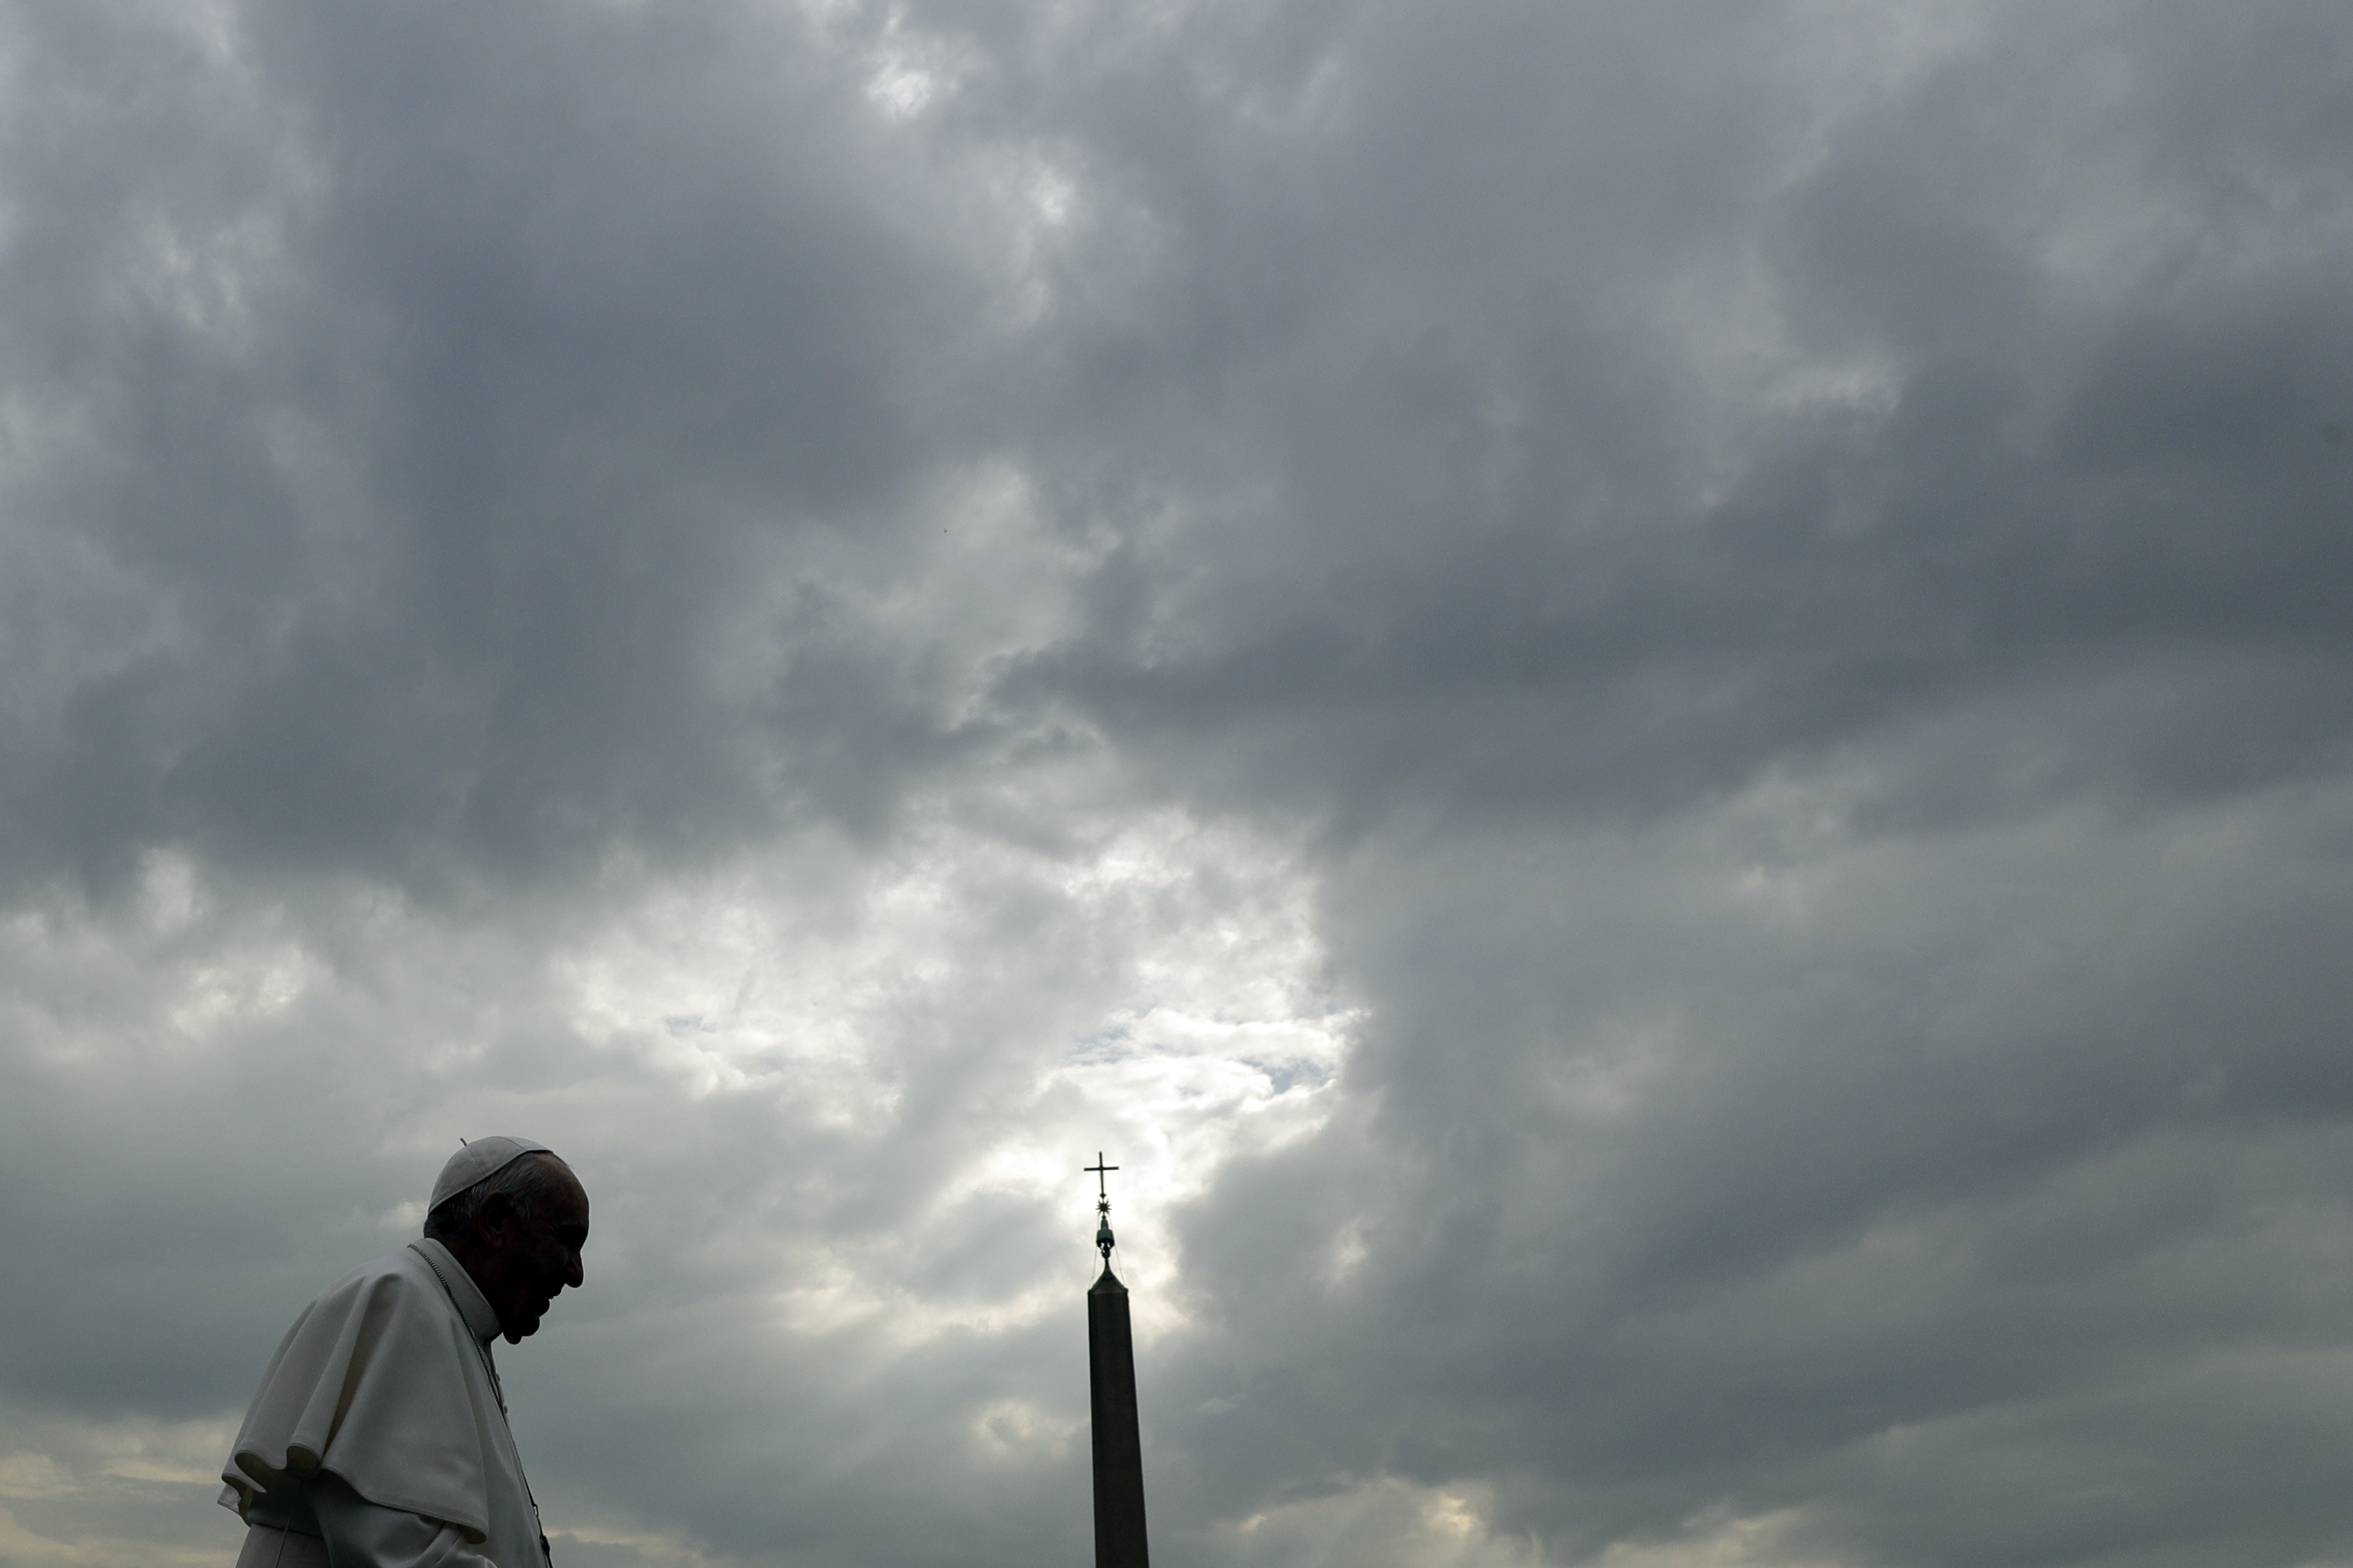 Pope Francis is silhouetted against a cloudy sky as he arrives for his weekly general audience, in St. Peter's Square, at the Vatican, Wednesday, April 3, 2019. (AP Photo/Gregorio Borgia)